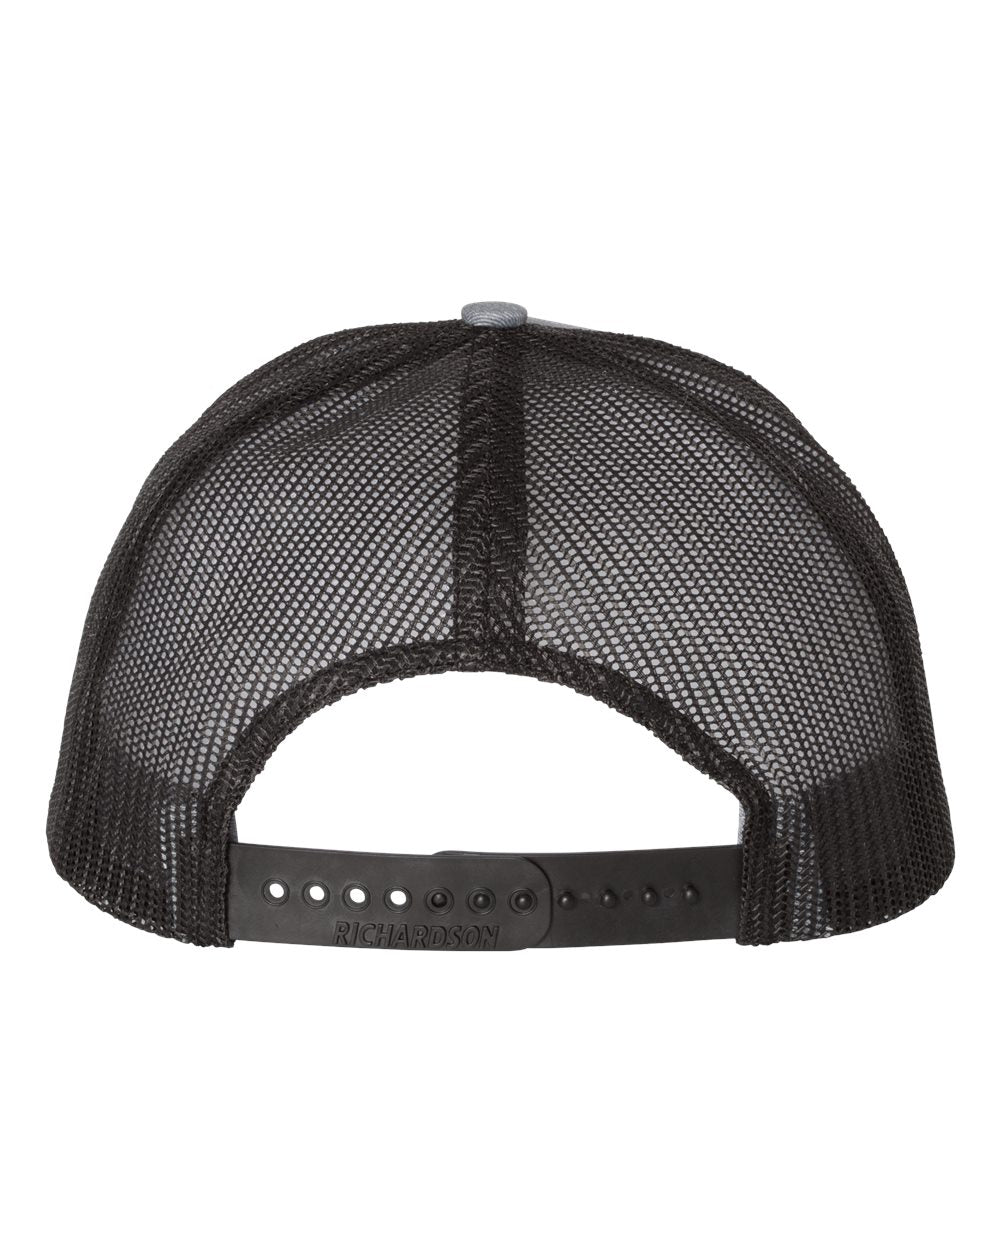 The Wanderheart Project Logo Mesh Trucker Hat